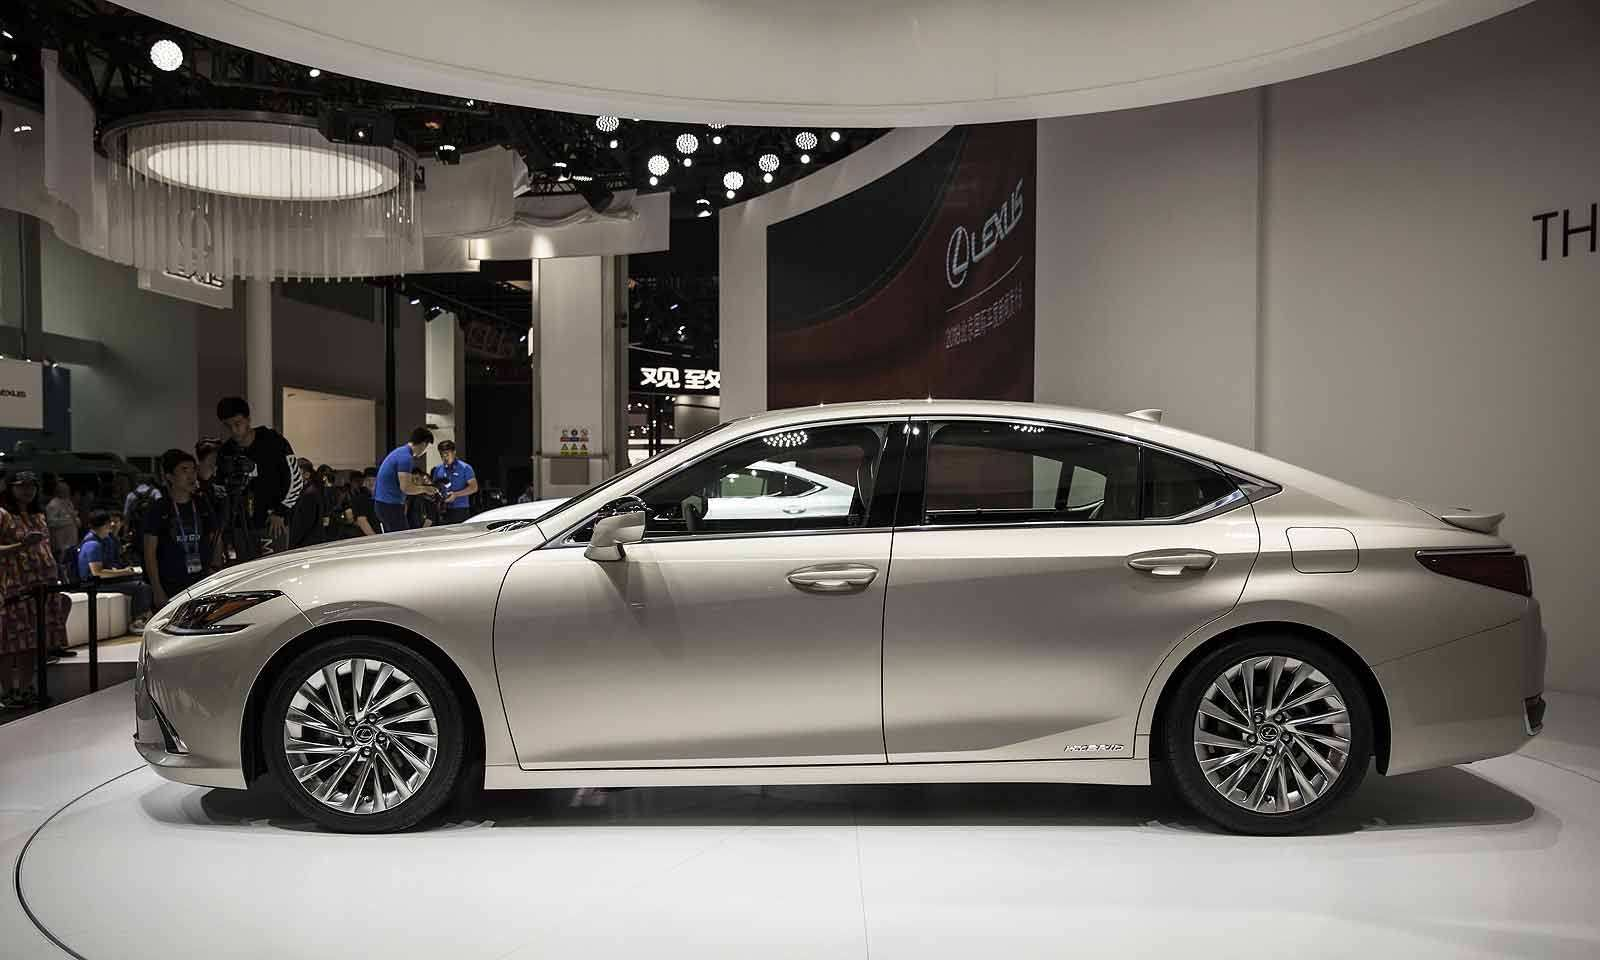 51 Concept of Are The 2019 Lexus Out Yet Rumors for Are The 2019 Lexus Out Yet